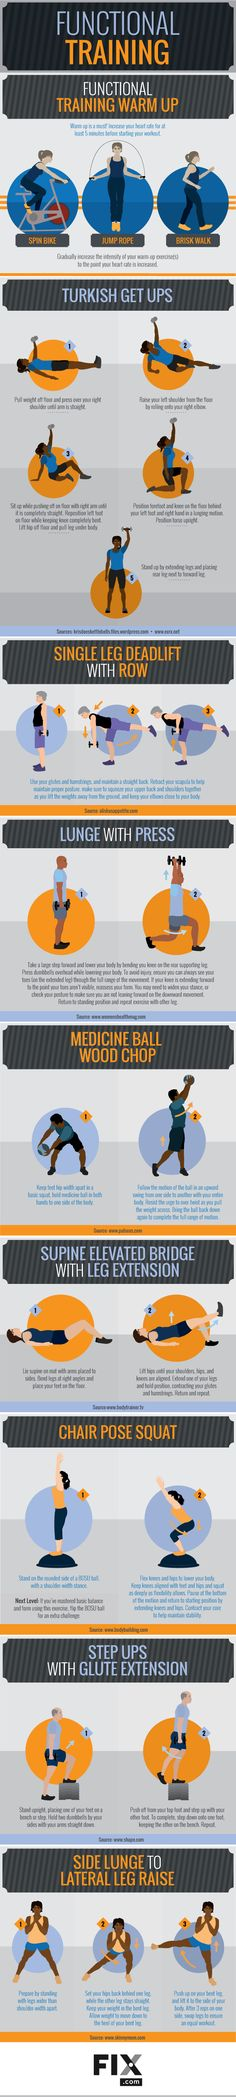 Be a stronger, healthier, and happier you by incorporating functional training into your workout schedule. These simple exercises will increase your muscle strength, making everyday tasks easier!